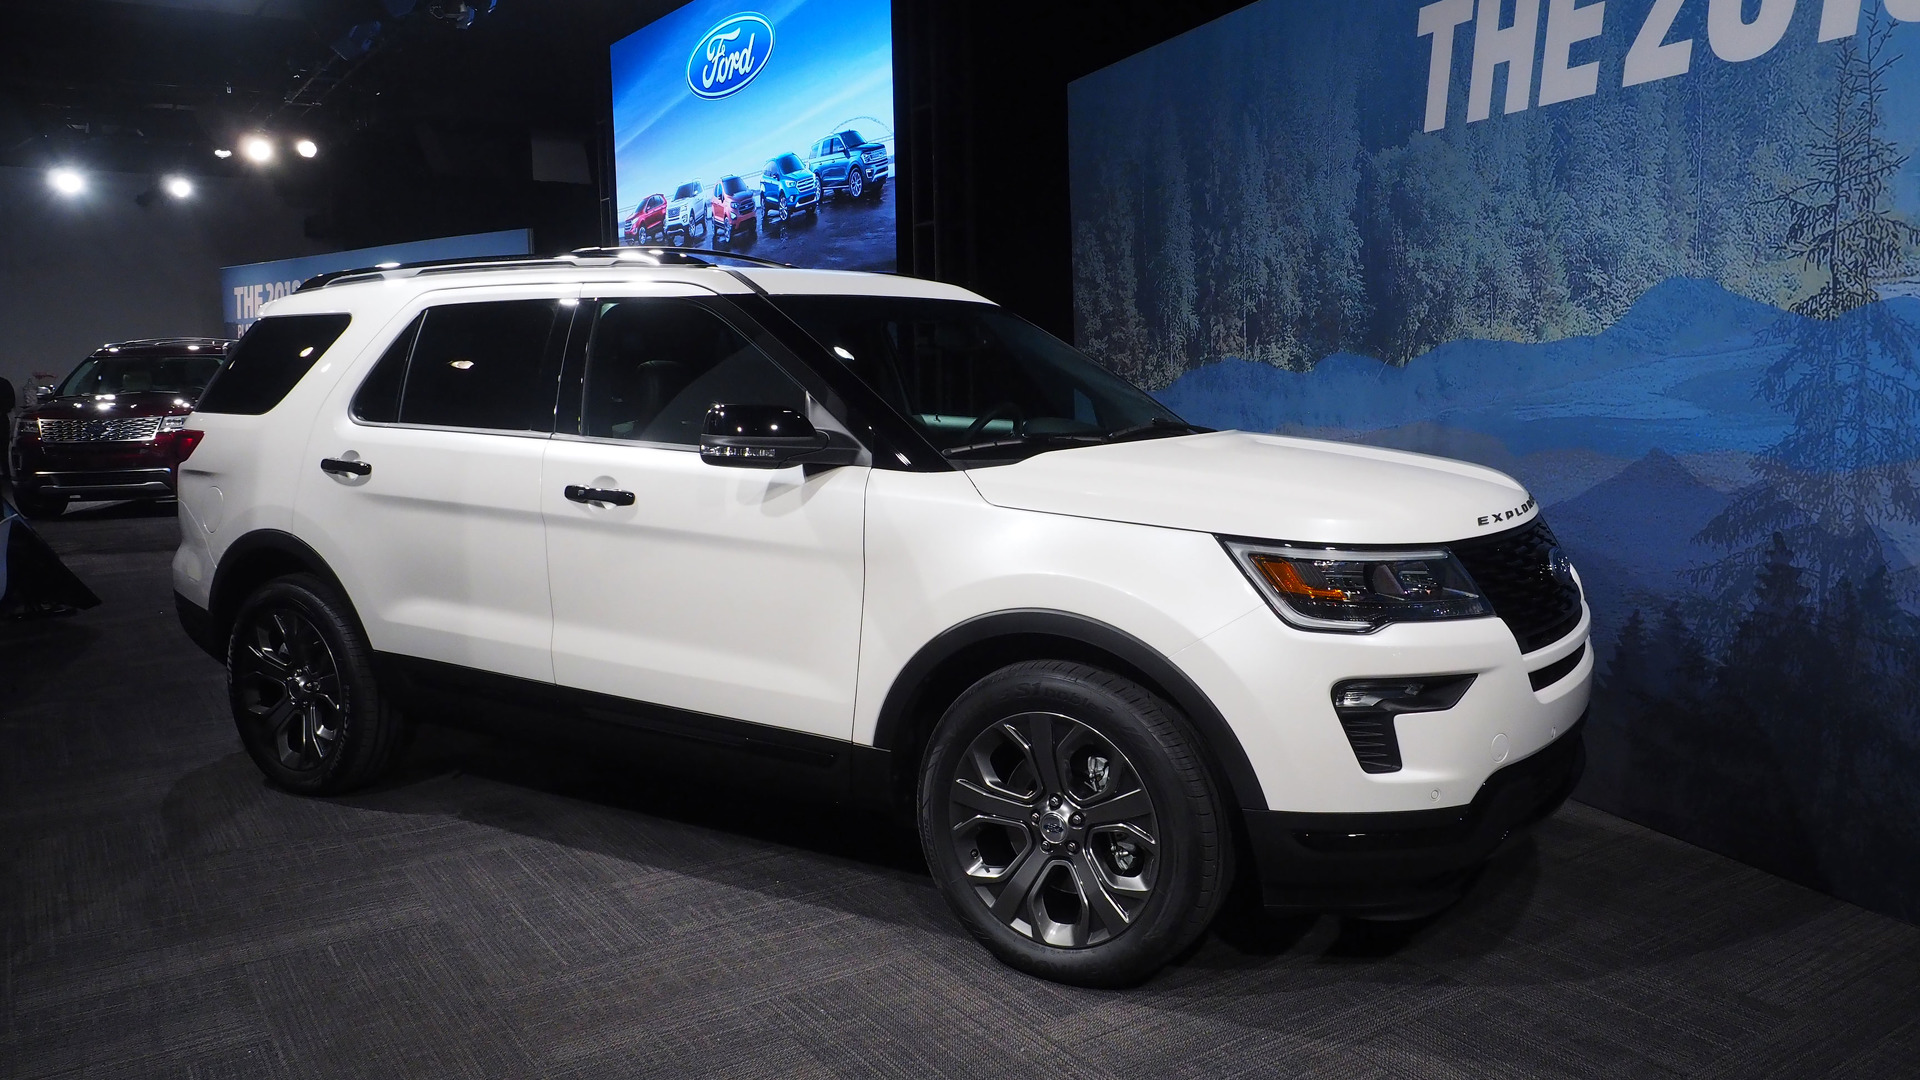 2018 ford explorer updates include more tech safety options. Black Bedroom Furniture Sets. Home Design Ideas